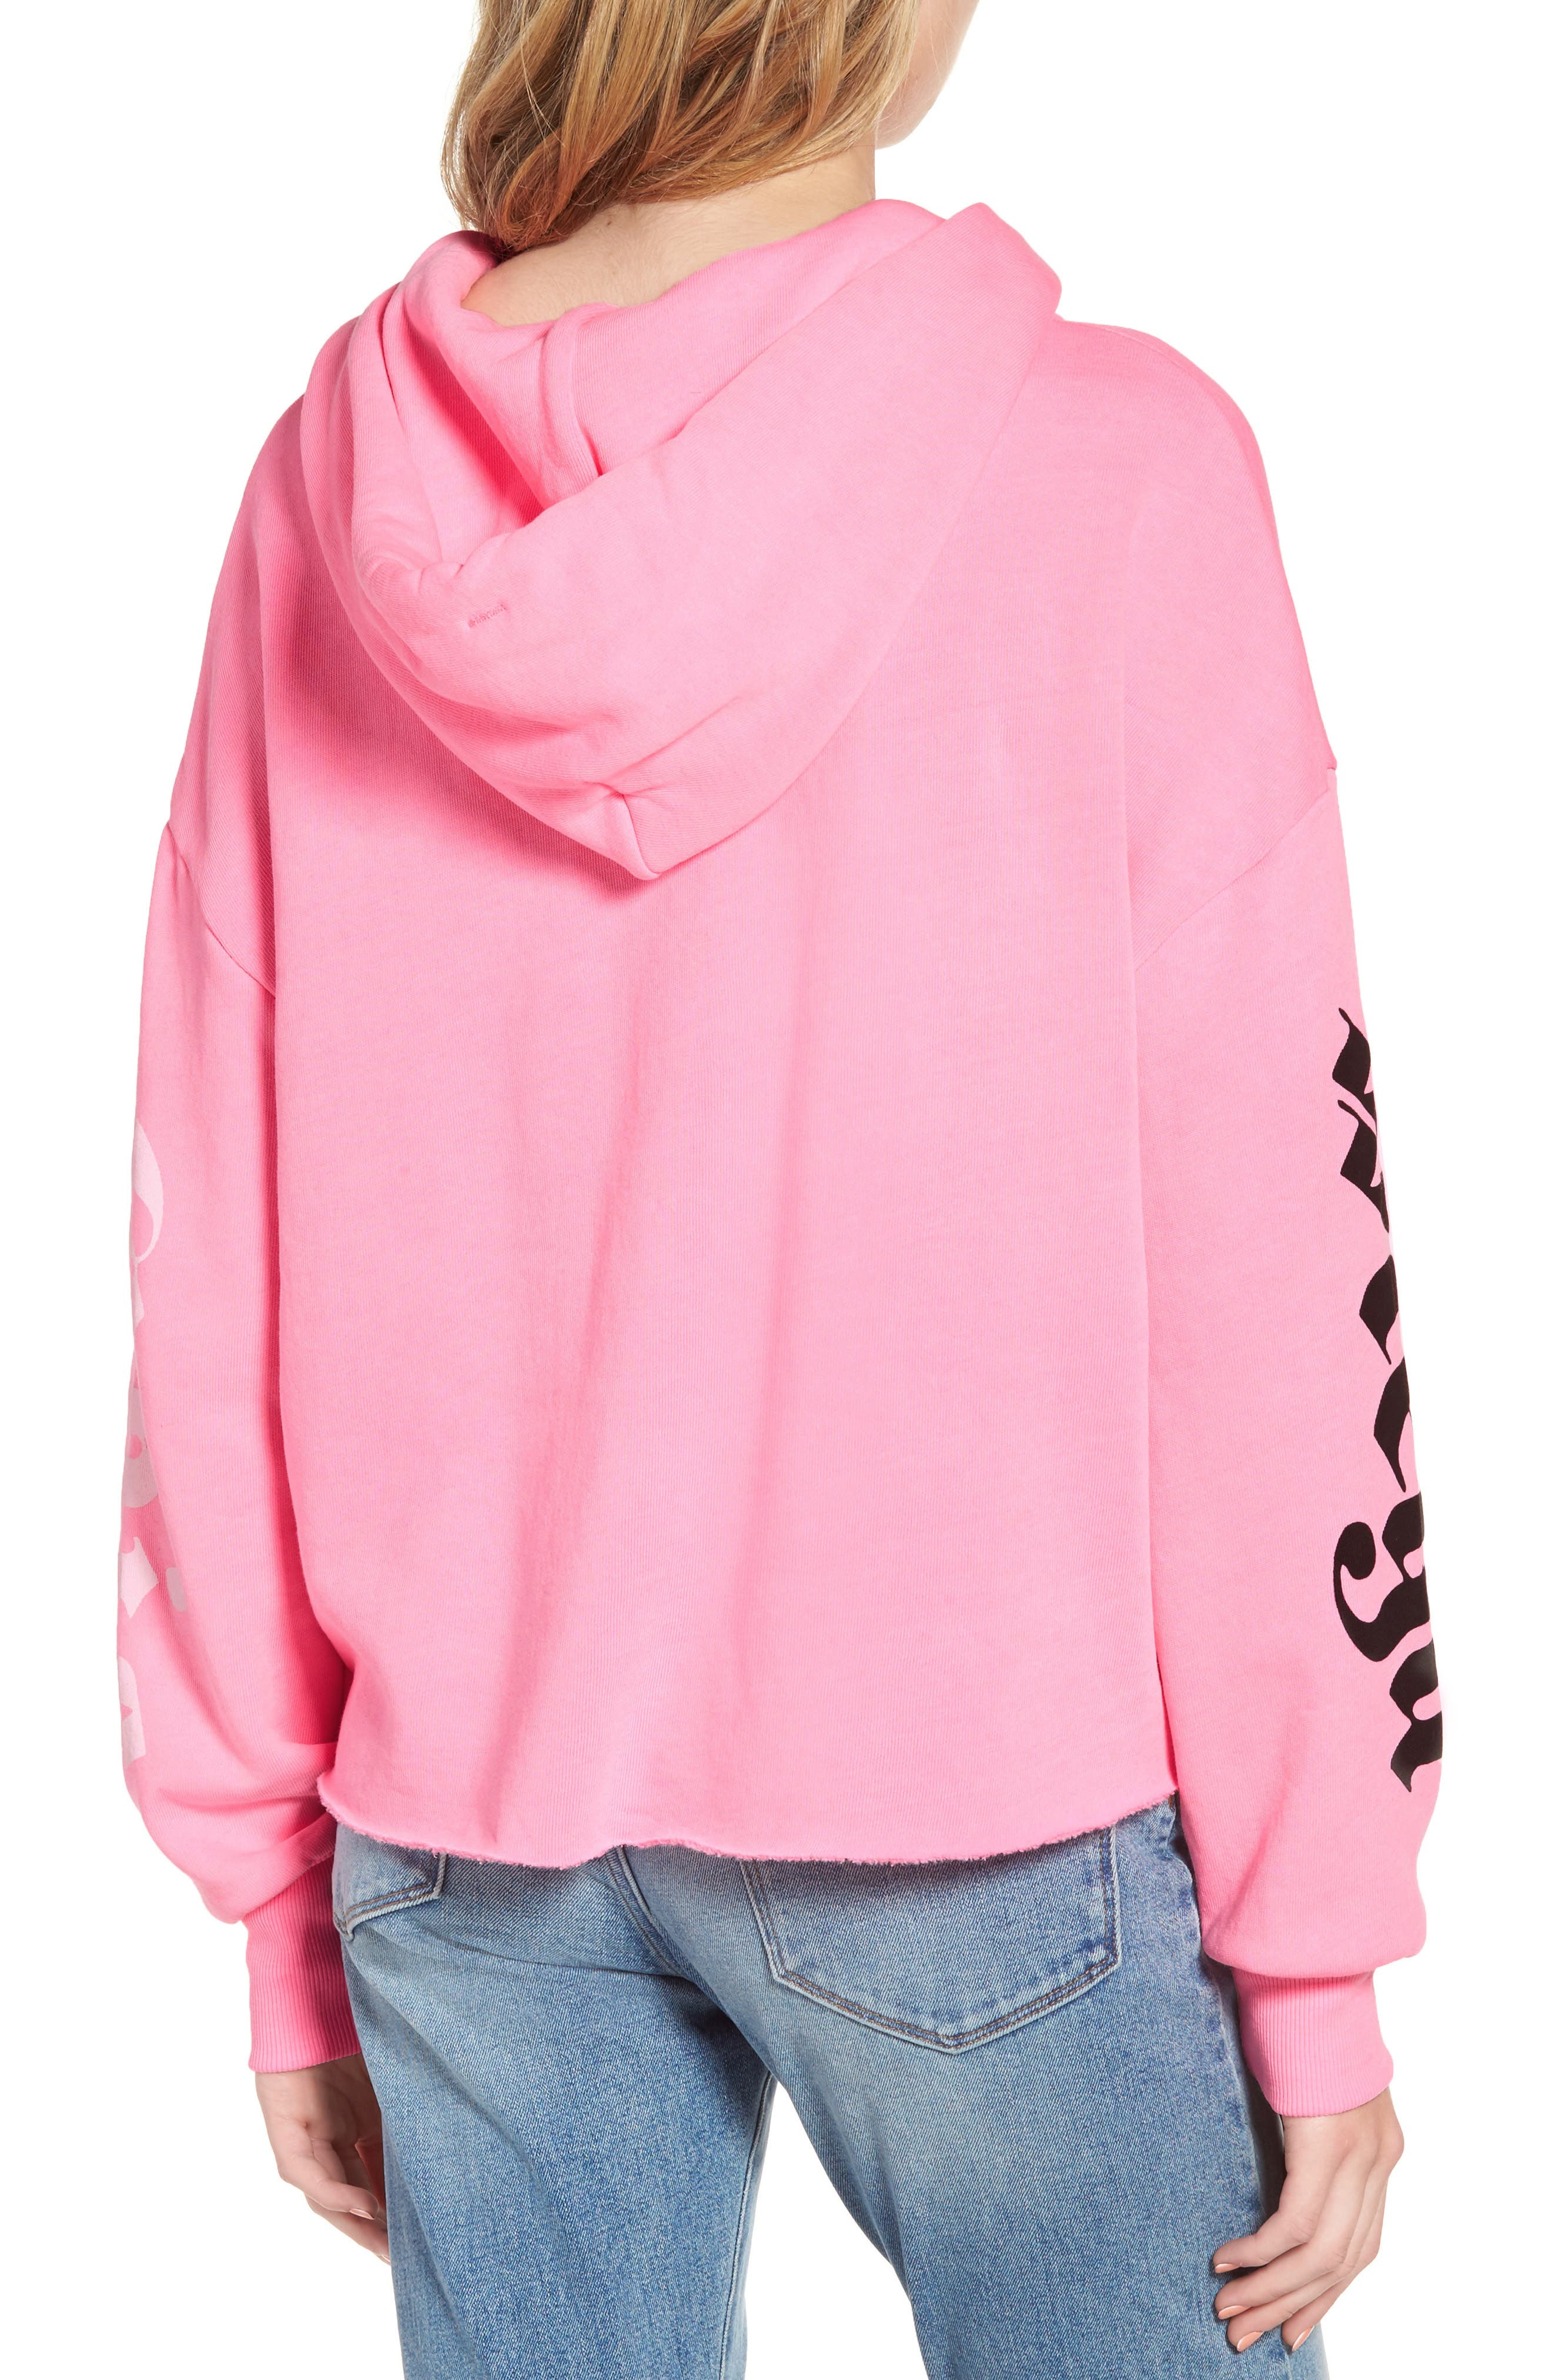 Mega Chic Freddy Hoodie,                             Alternate thumbnail 3, color,                             Neon Sign Pink